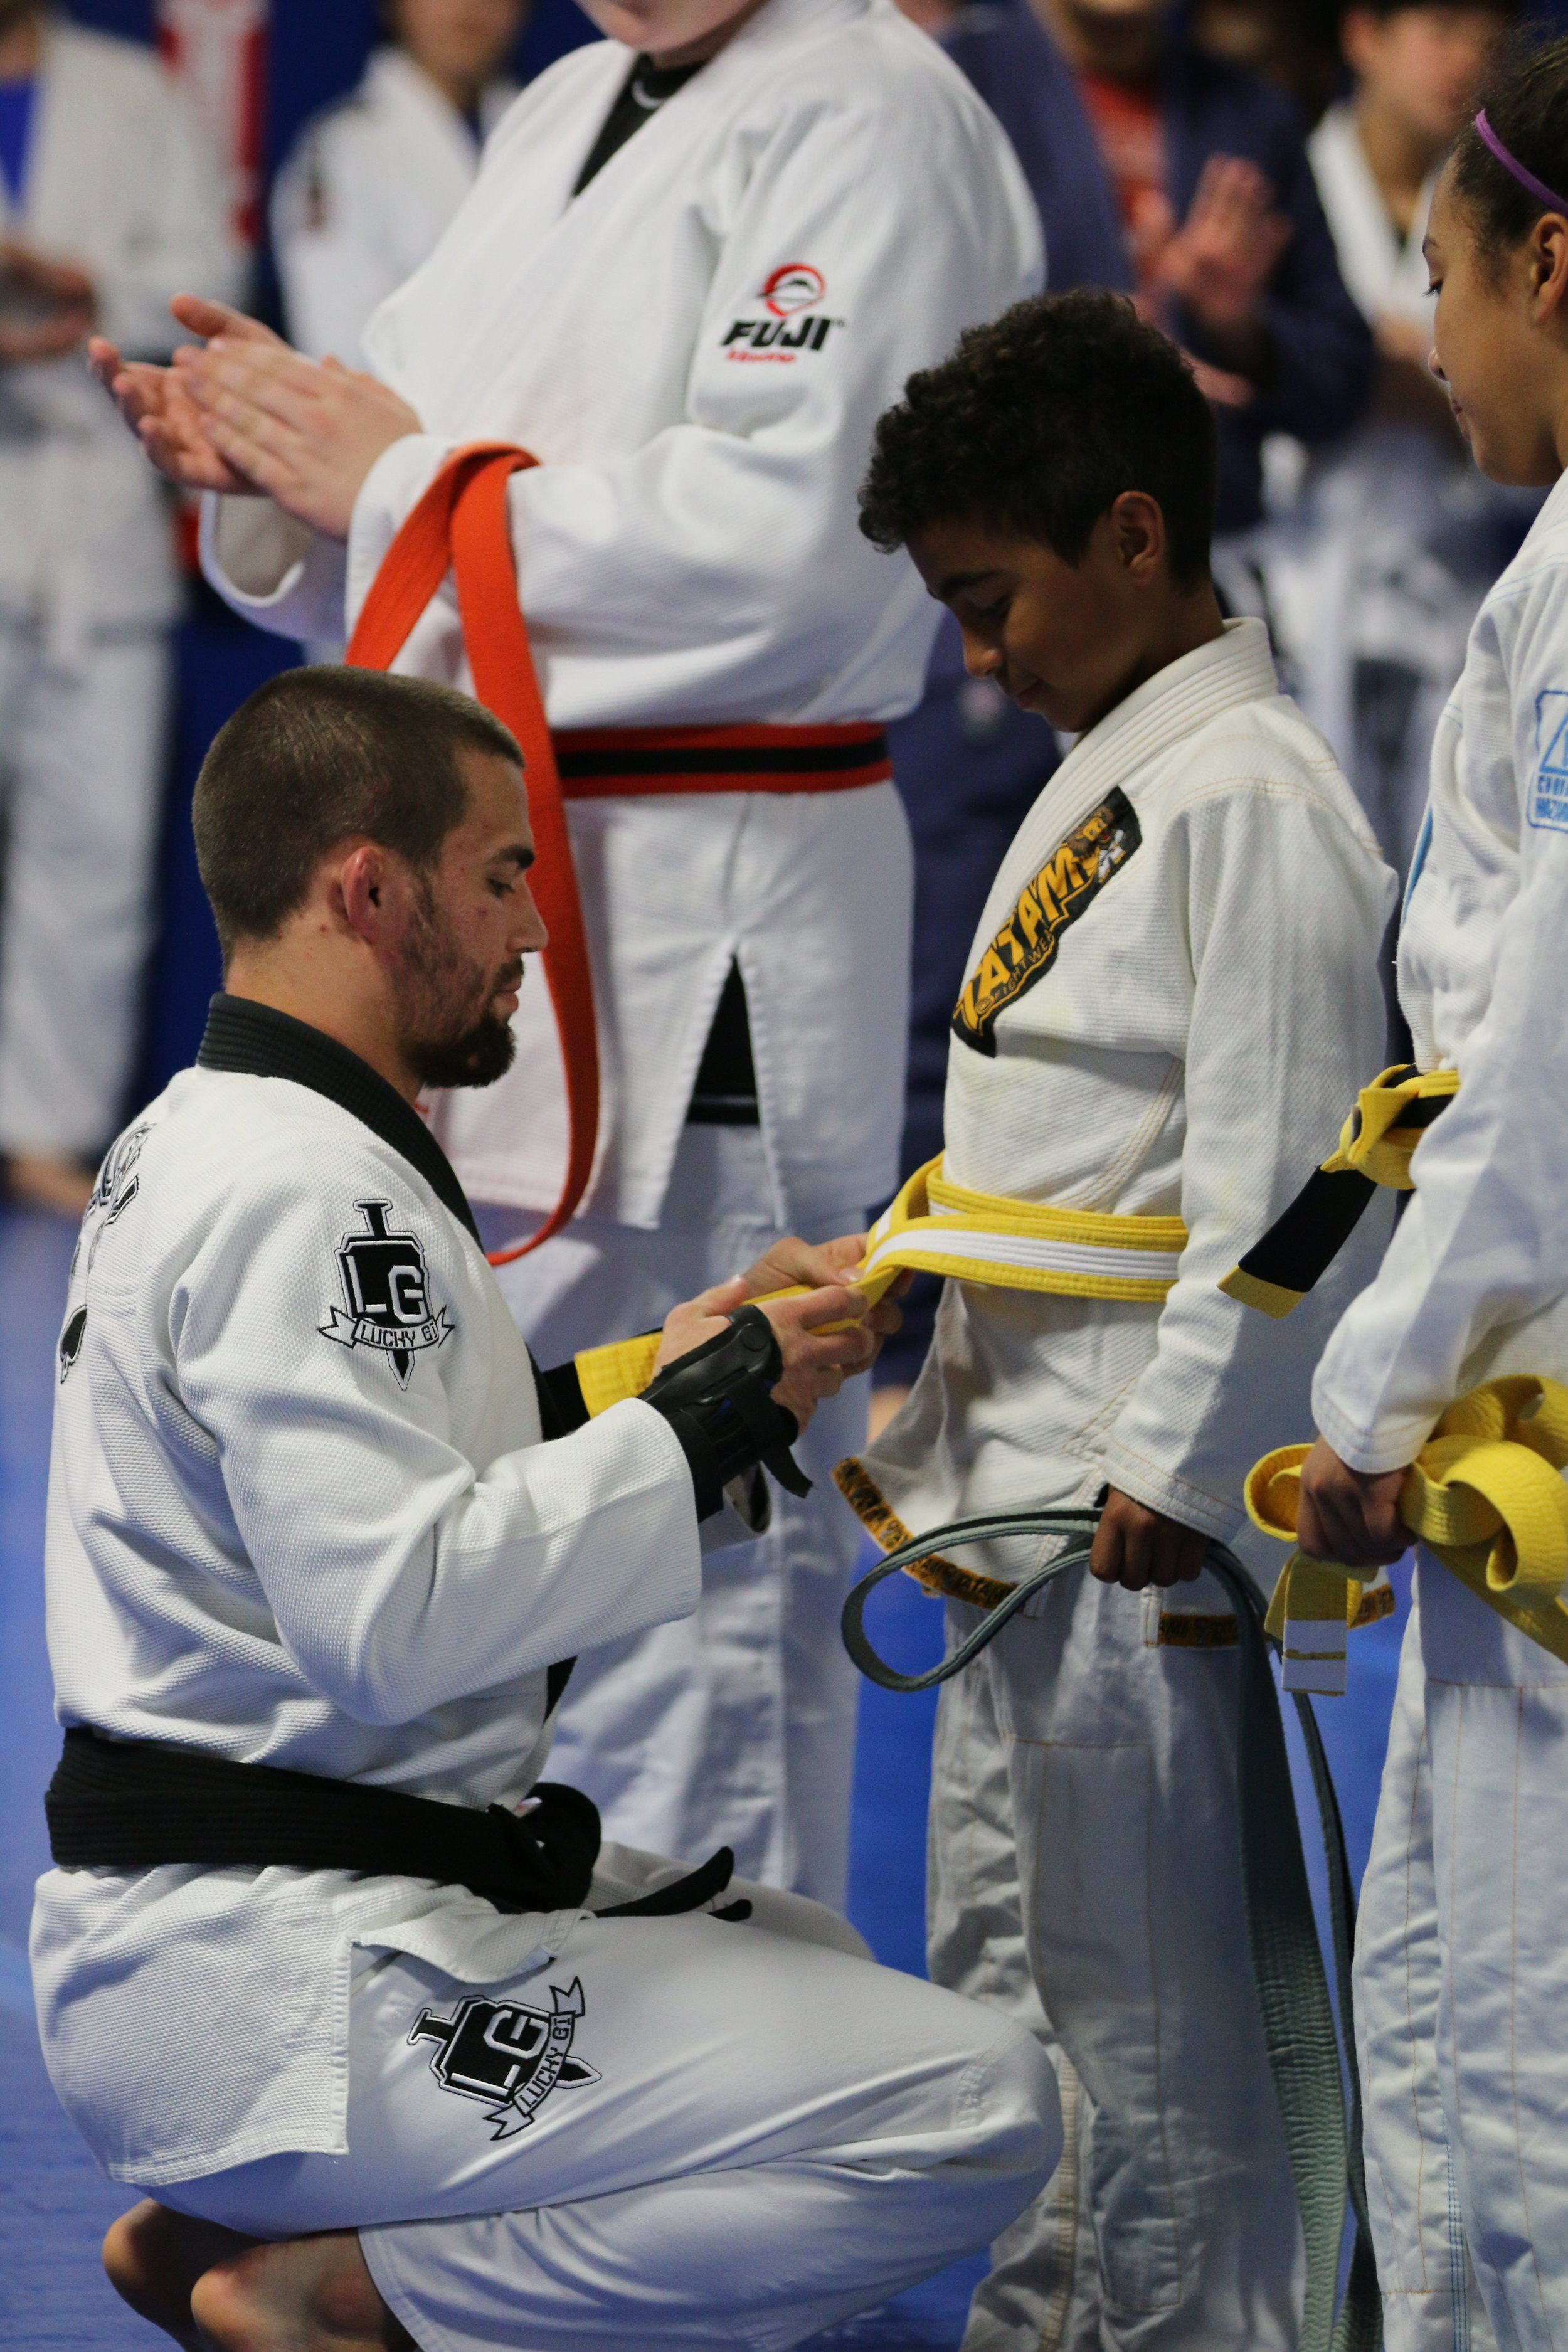 Garry Tonon promotes his young student from BJJ Grey belt to Yellow belt.